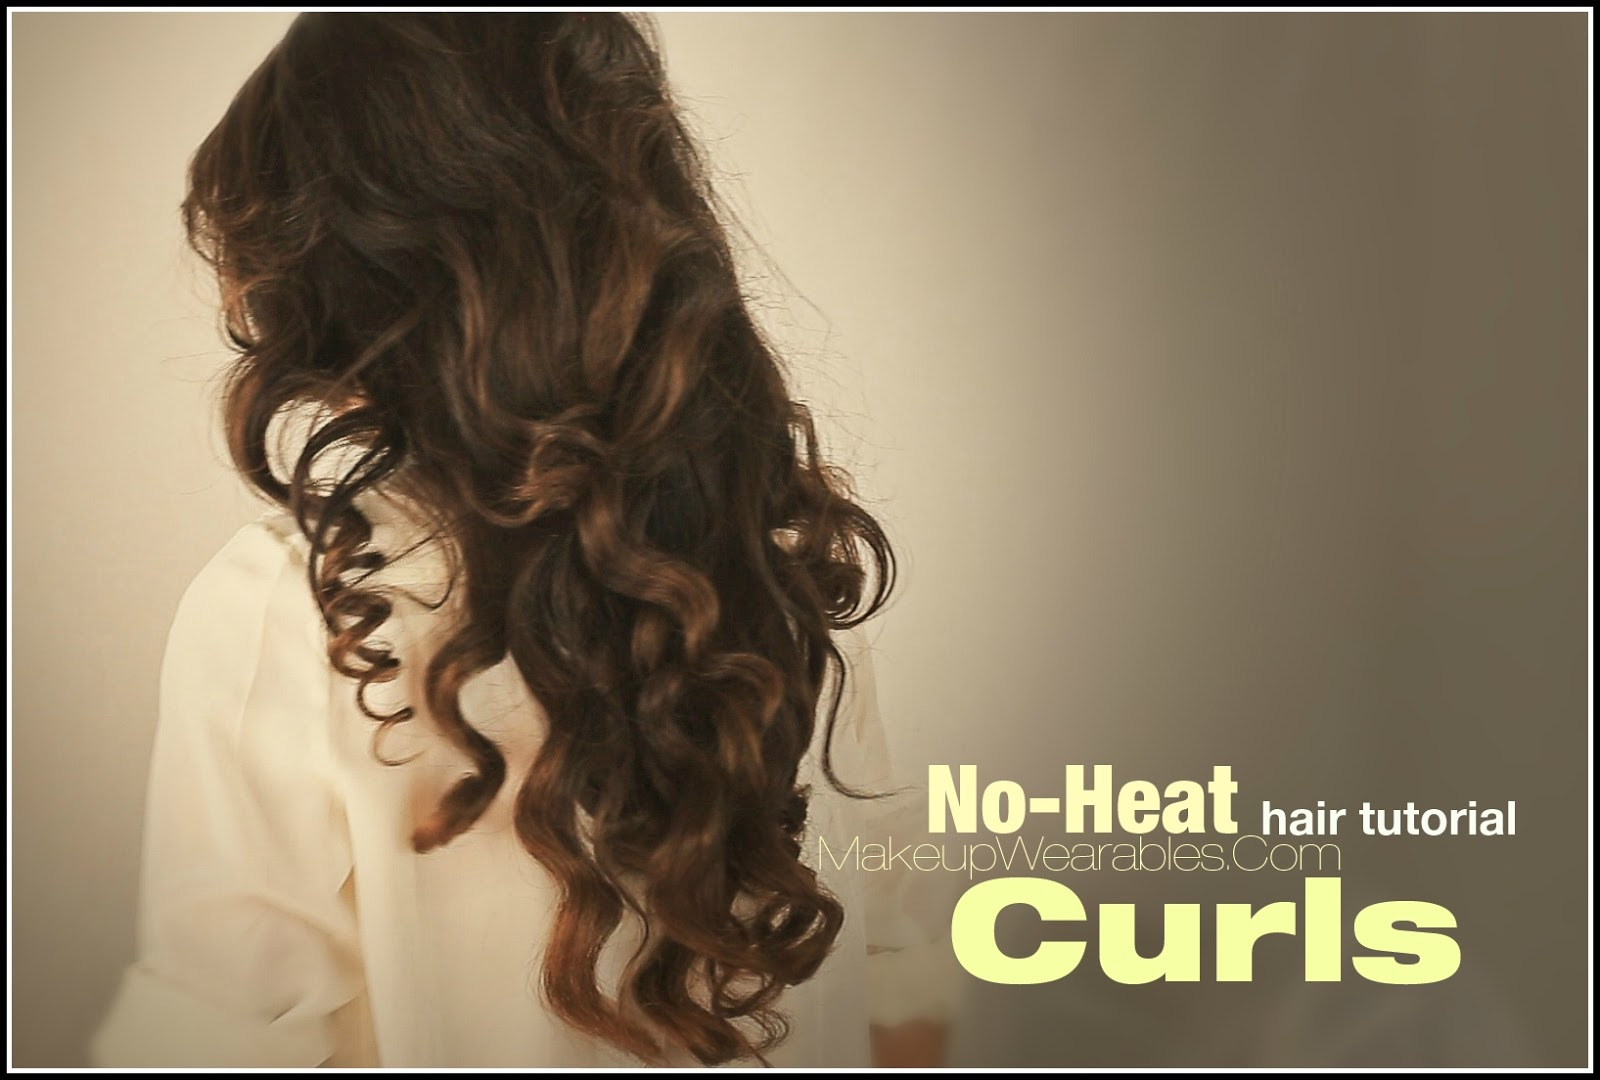 ... long hair tutorial video heatless curly wavy hairstyles hairdos